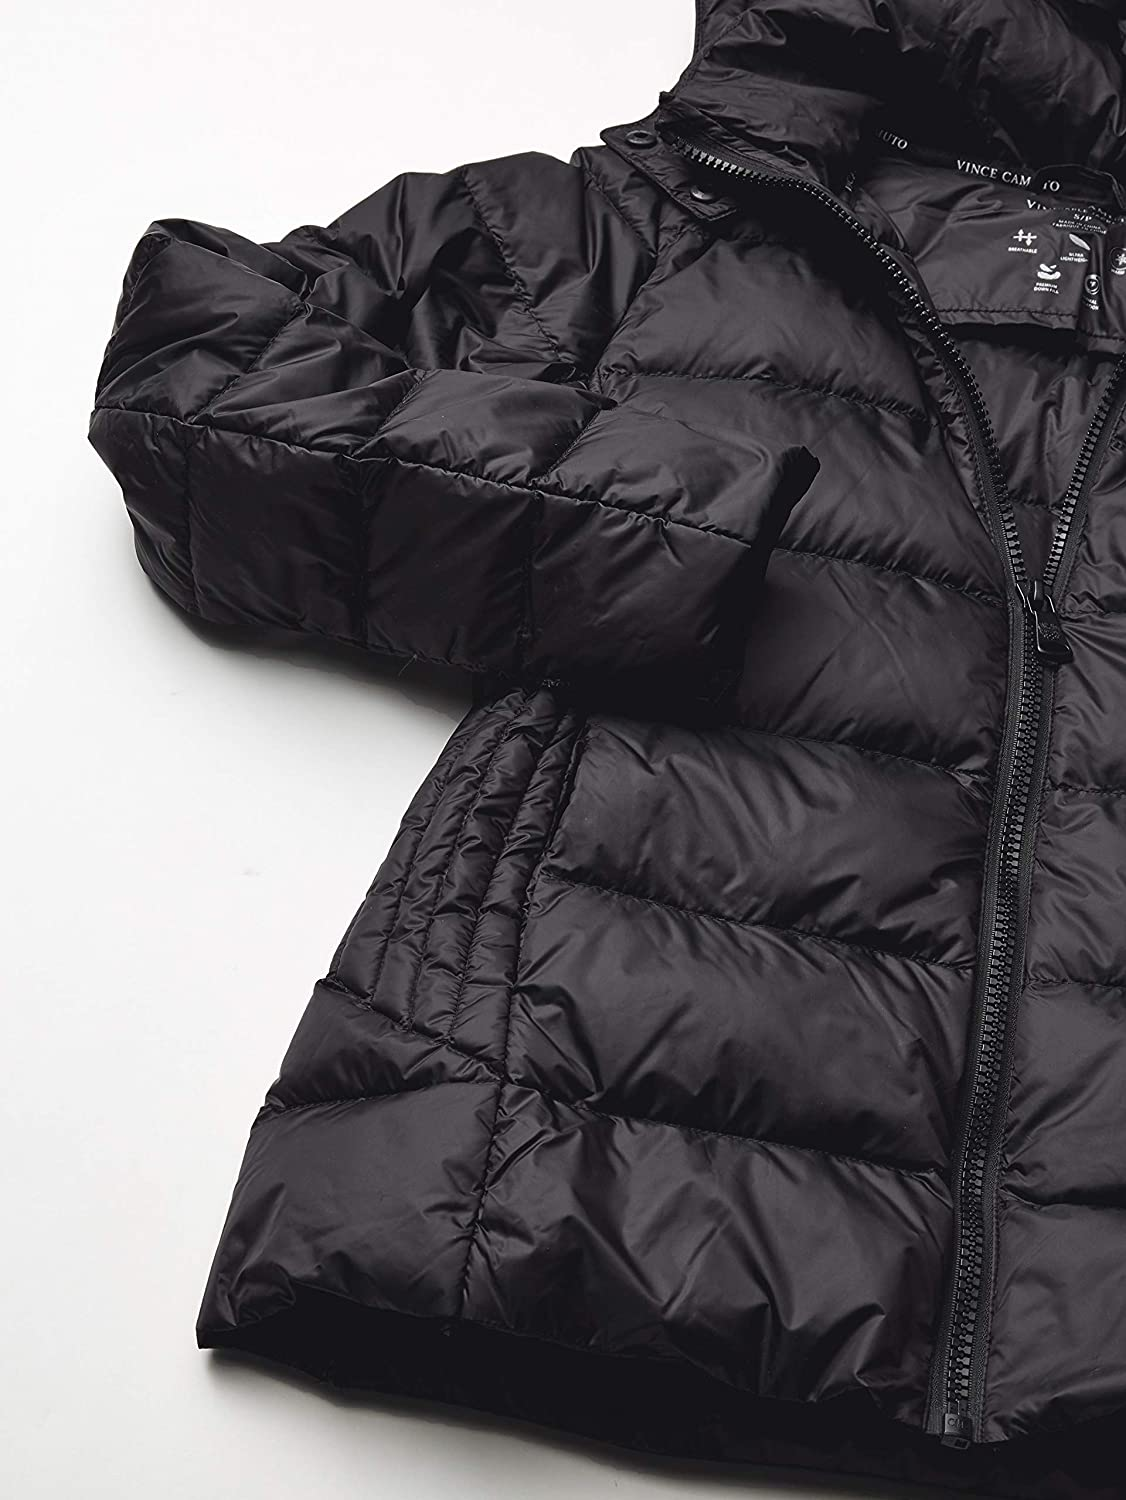 Vince Camuto Womens Packable Down Jacket Down Coat